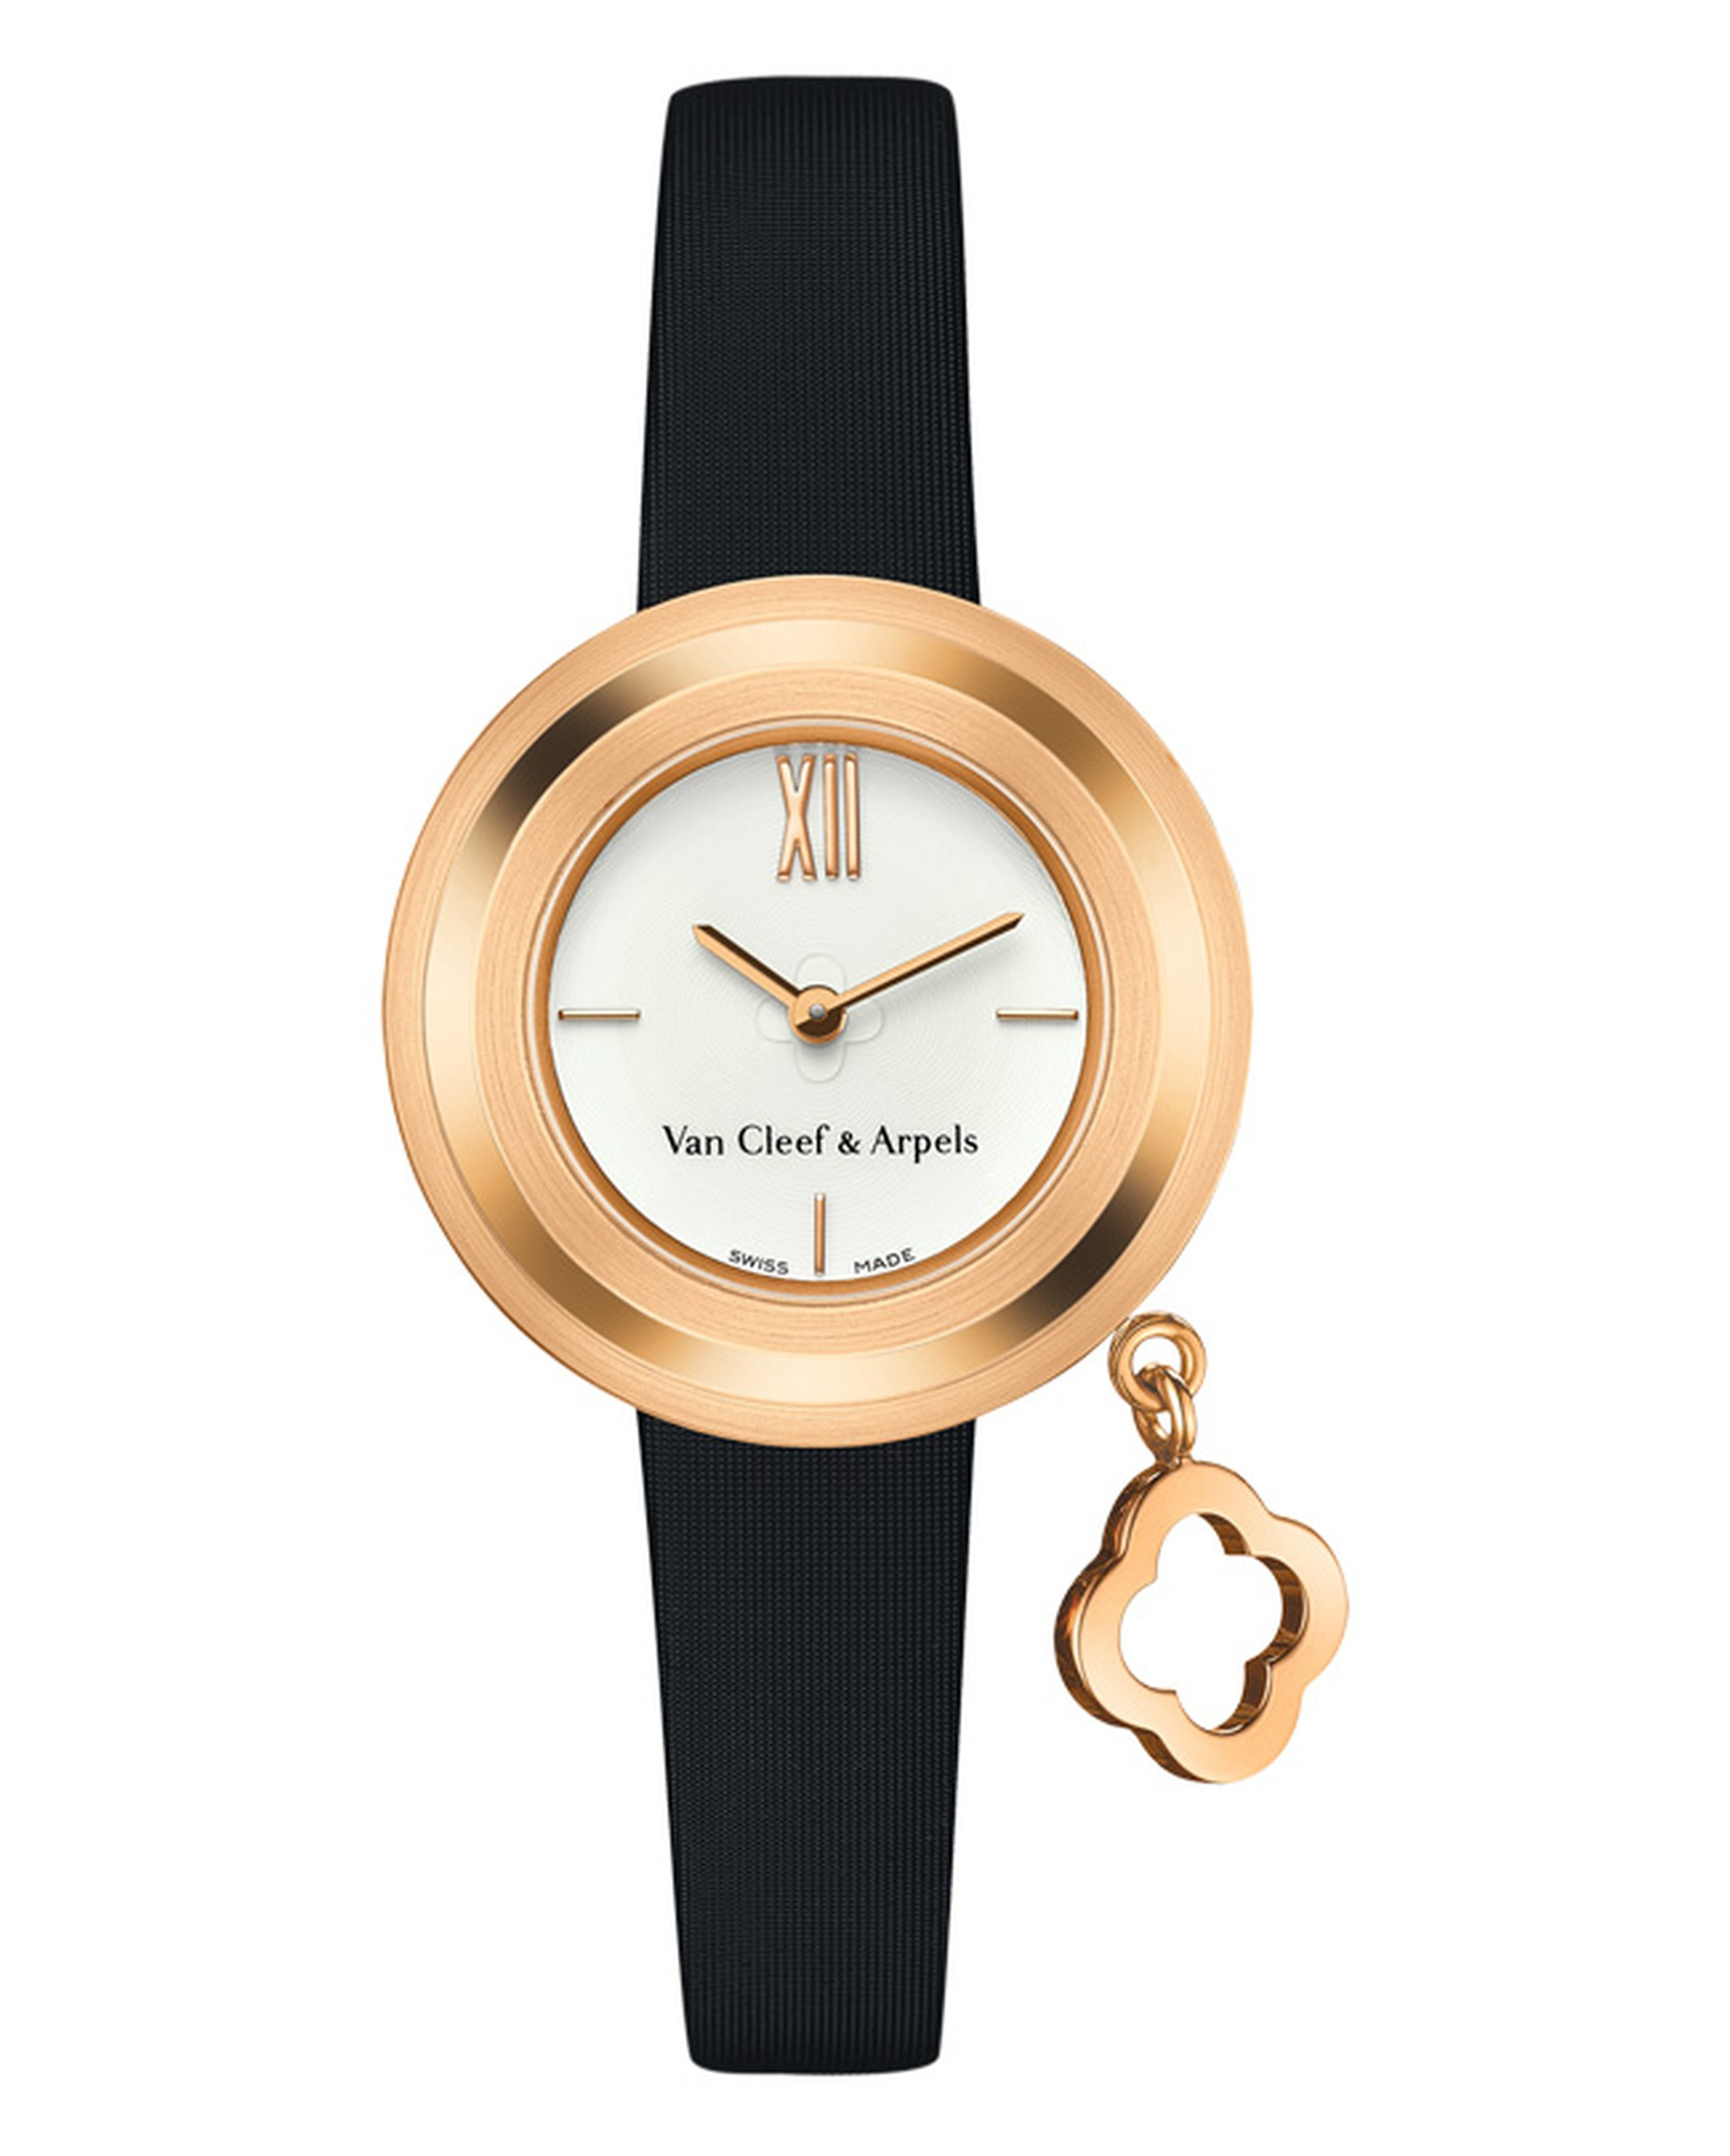 Van-Cleef-&-Arpels-Charms-Gold-Mini-watch_20140312_Main